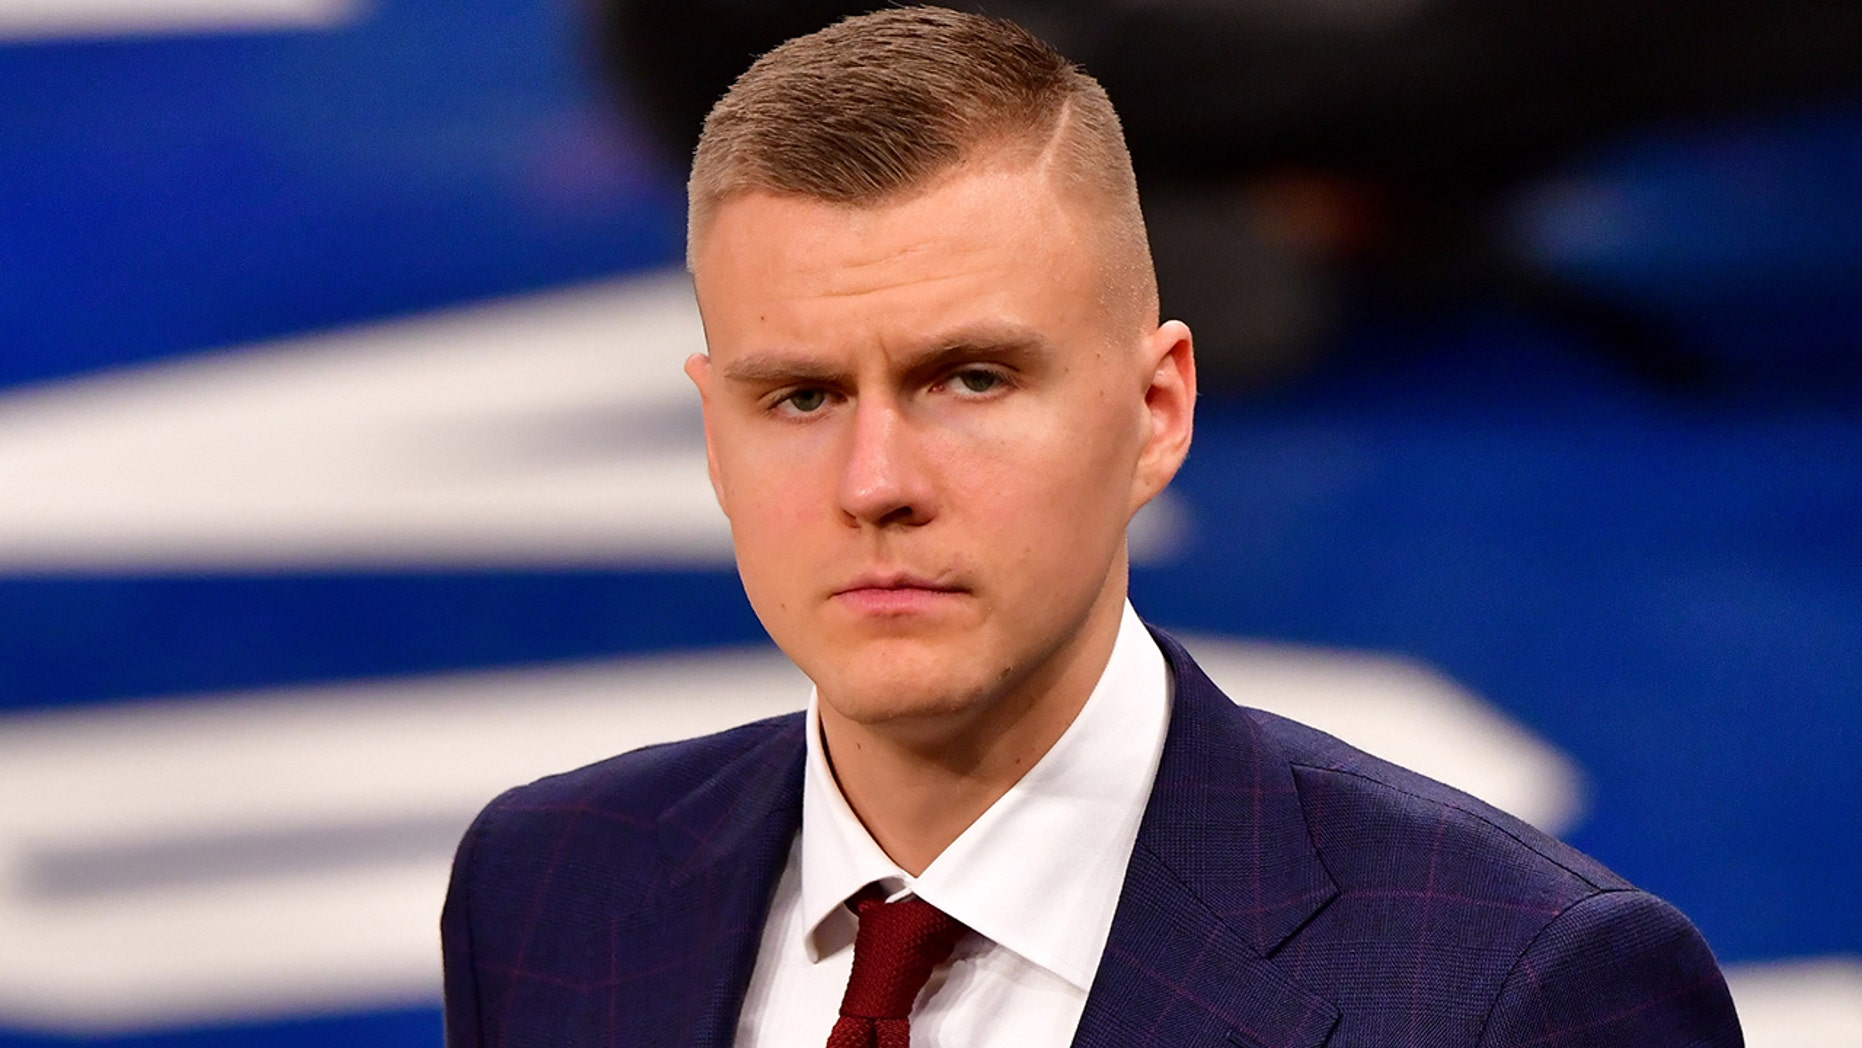 Kristaps Porzingis attends an Oklahoma City Thunder vs. New York Knicks game at Madison Square Garden on Jan. 21, 2019, in New York City. (Getty Images